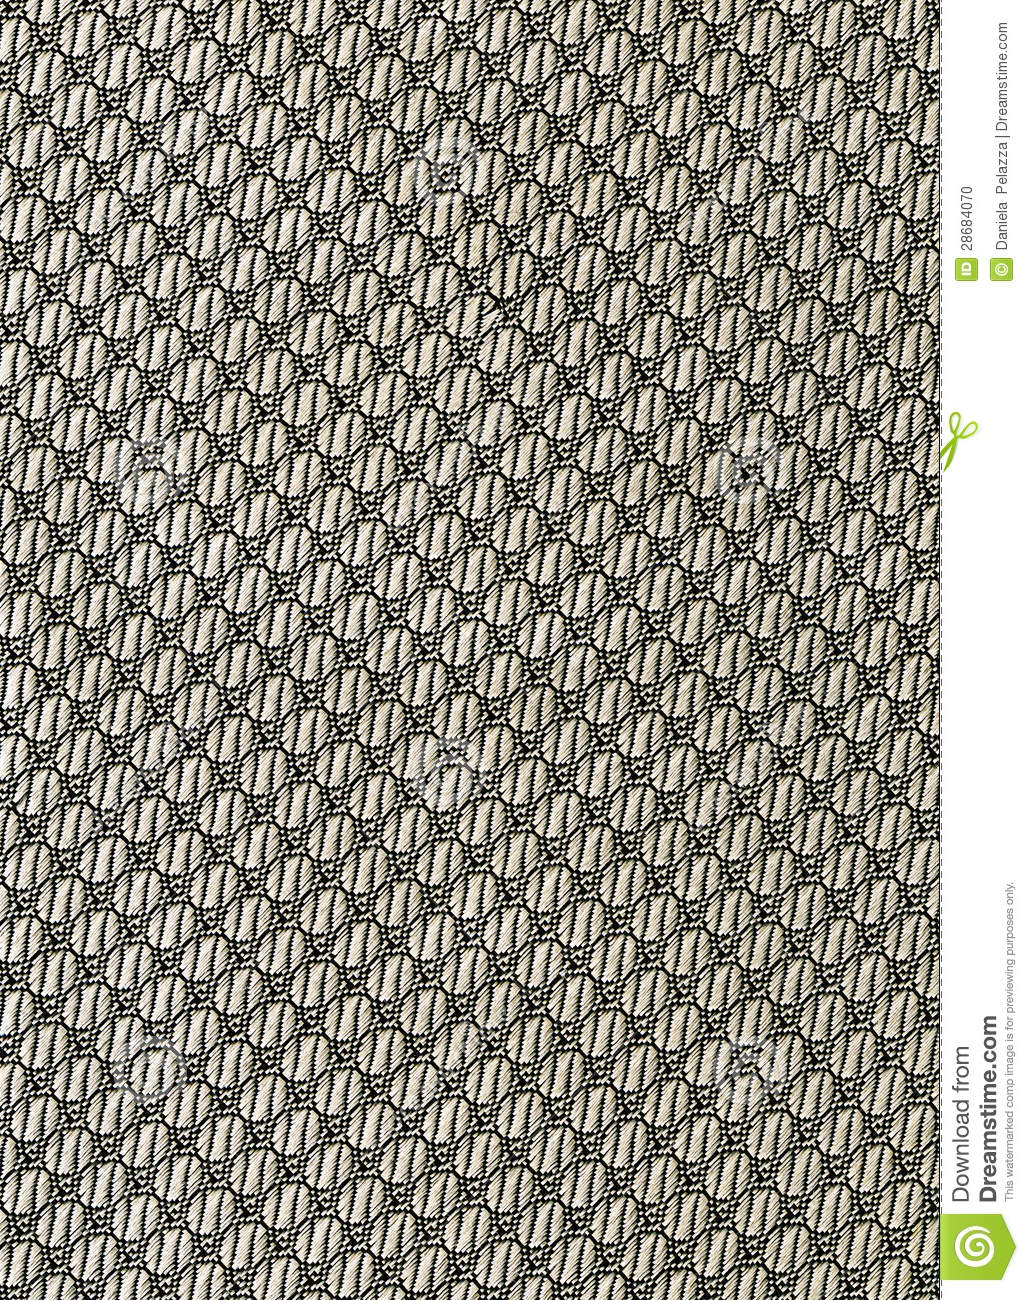 Black And Beige Living Room Decor: Black And Beige Fabric Stock Photo. Image Of Pattern